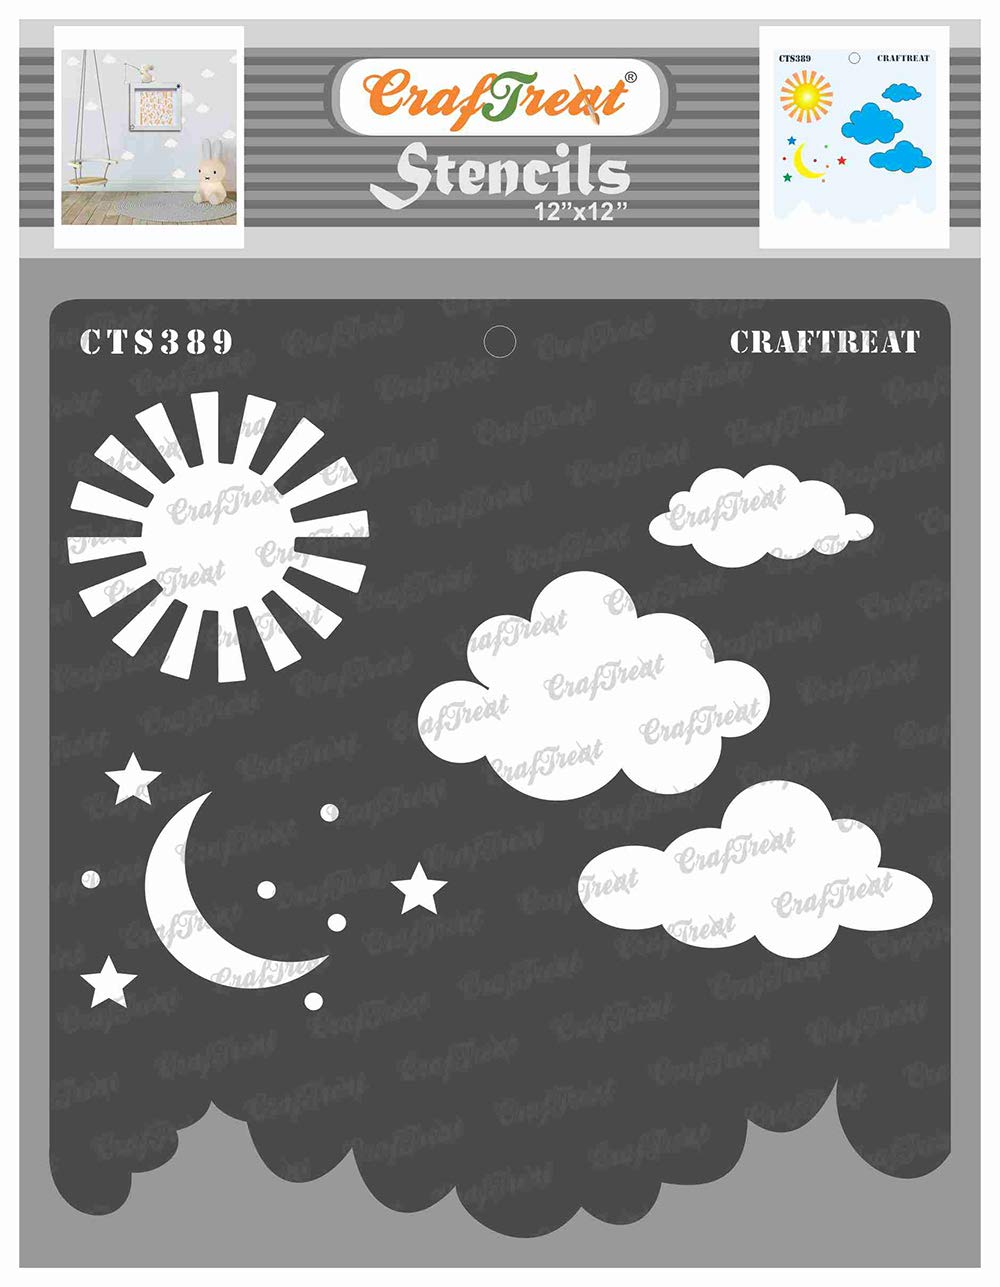 CrafTreat Moon and Star Stencils for Painting on Wood, Canvas, Paper, Fabric, Floor, Wall and Tile - Clouds and Stars Stencil - 12x12 Inches - Reusable DIY Art and Craft Stencils - Cloud Wall Stencil